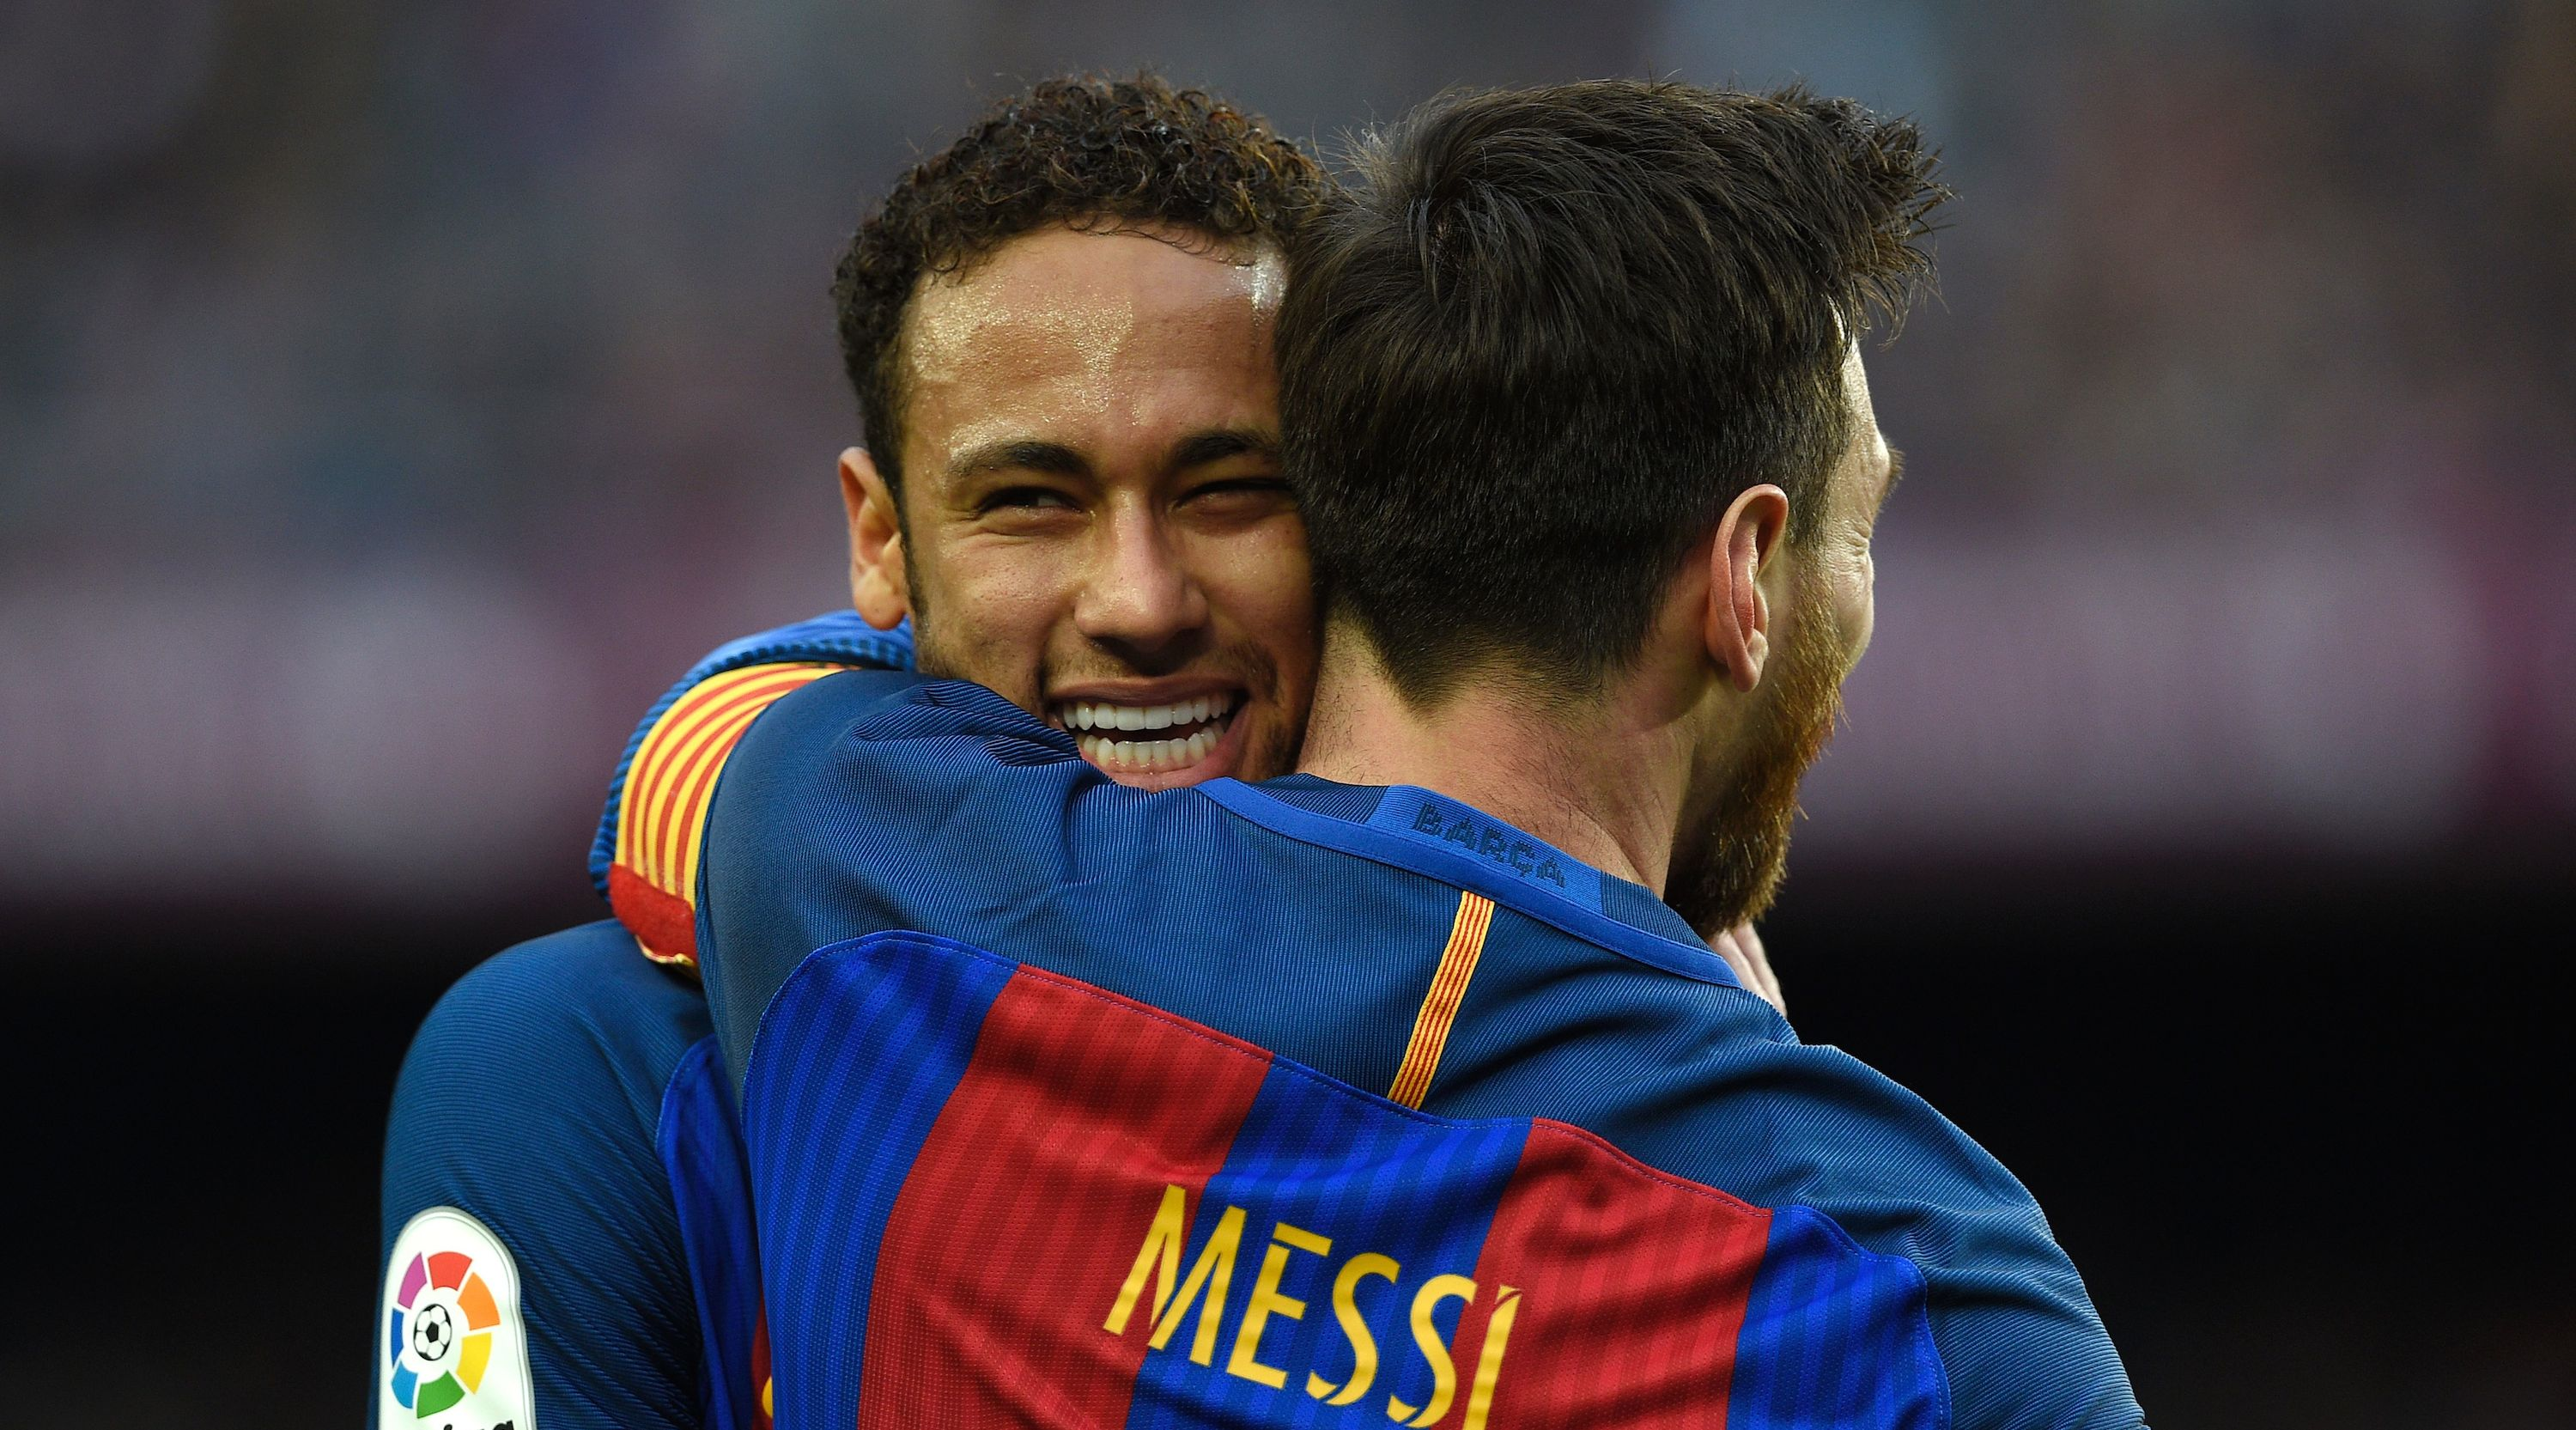 Barcelona's Argentinian forward Lionel Messi (R) celebrates a goal with Barcelona's Brazilian forward Neymar during the Spanish league football match FC Barcelona vs Athletic Club Bilbao at the Camp Nou stadium in Barcelona on February 4, 2017. / AFP / LLUIS GENE (Photo credit should read LLUIS GENE/AFP/Getty Images)